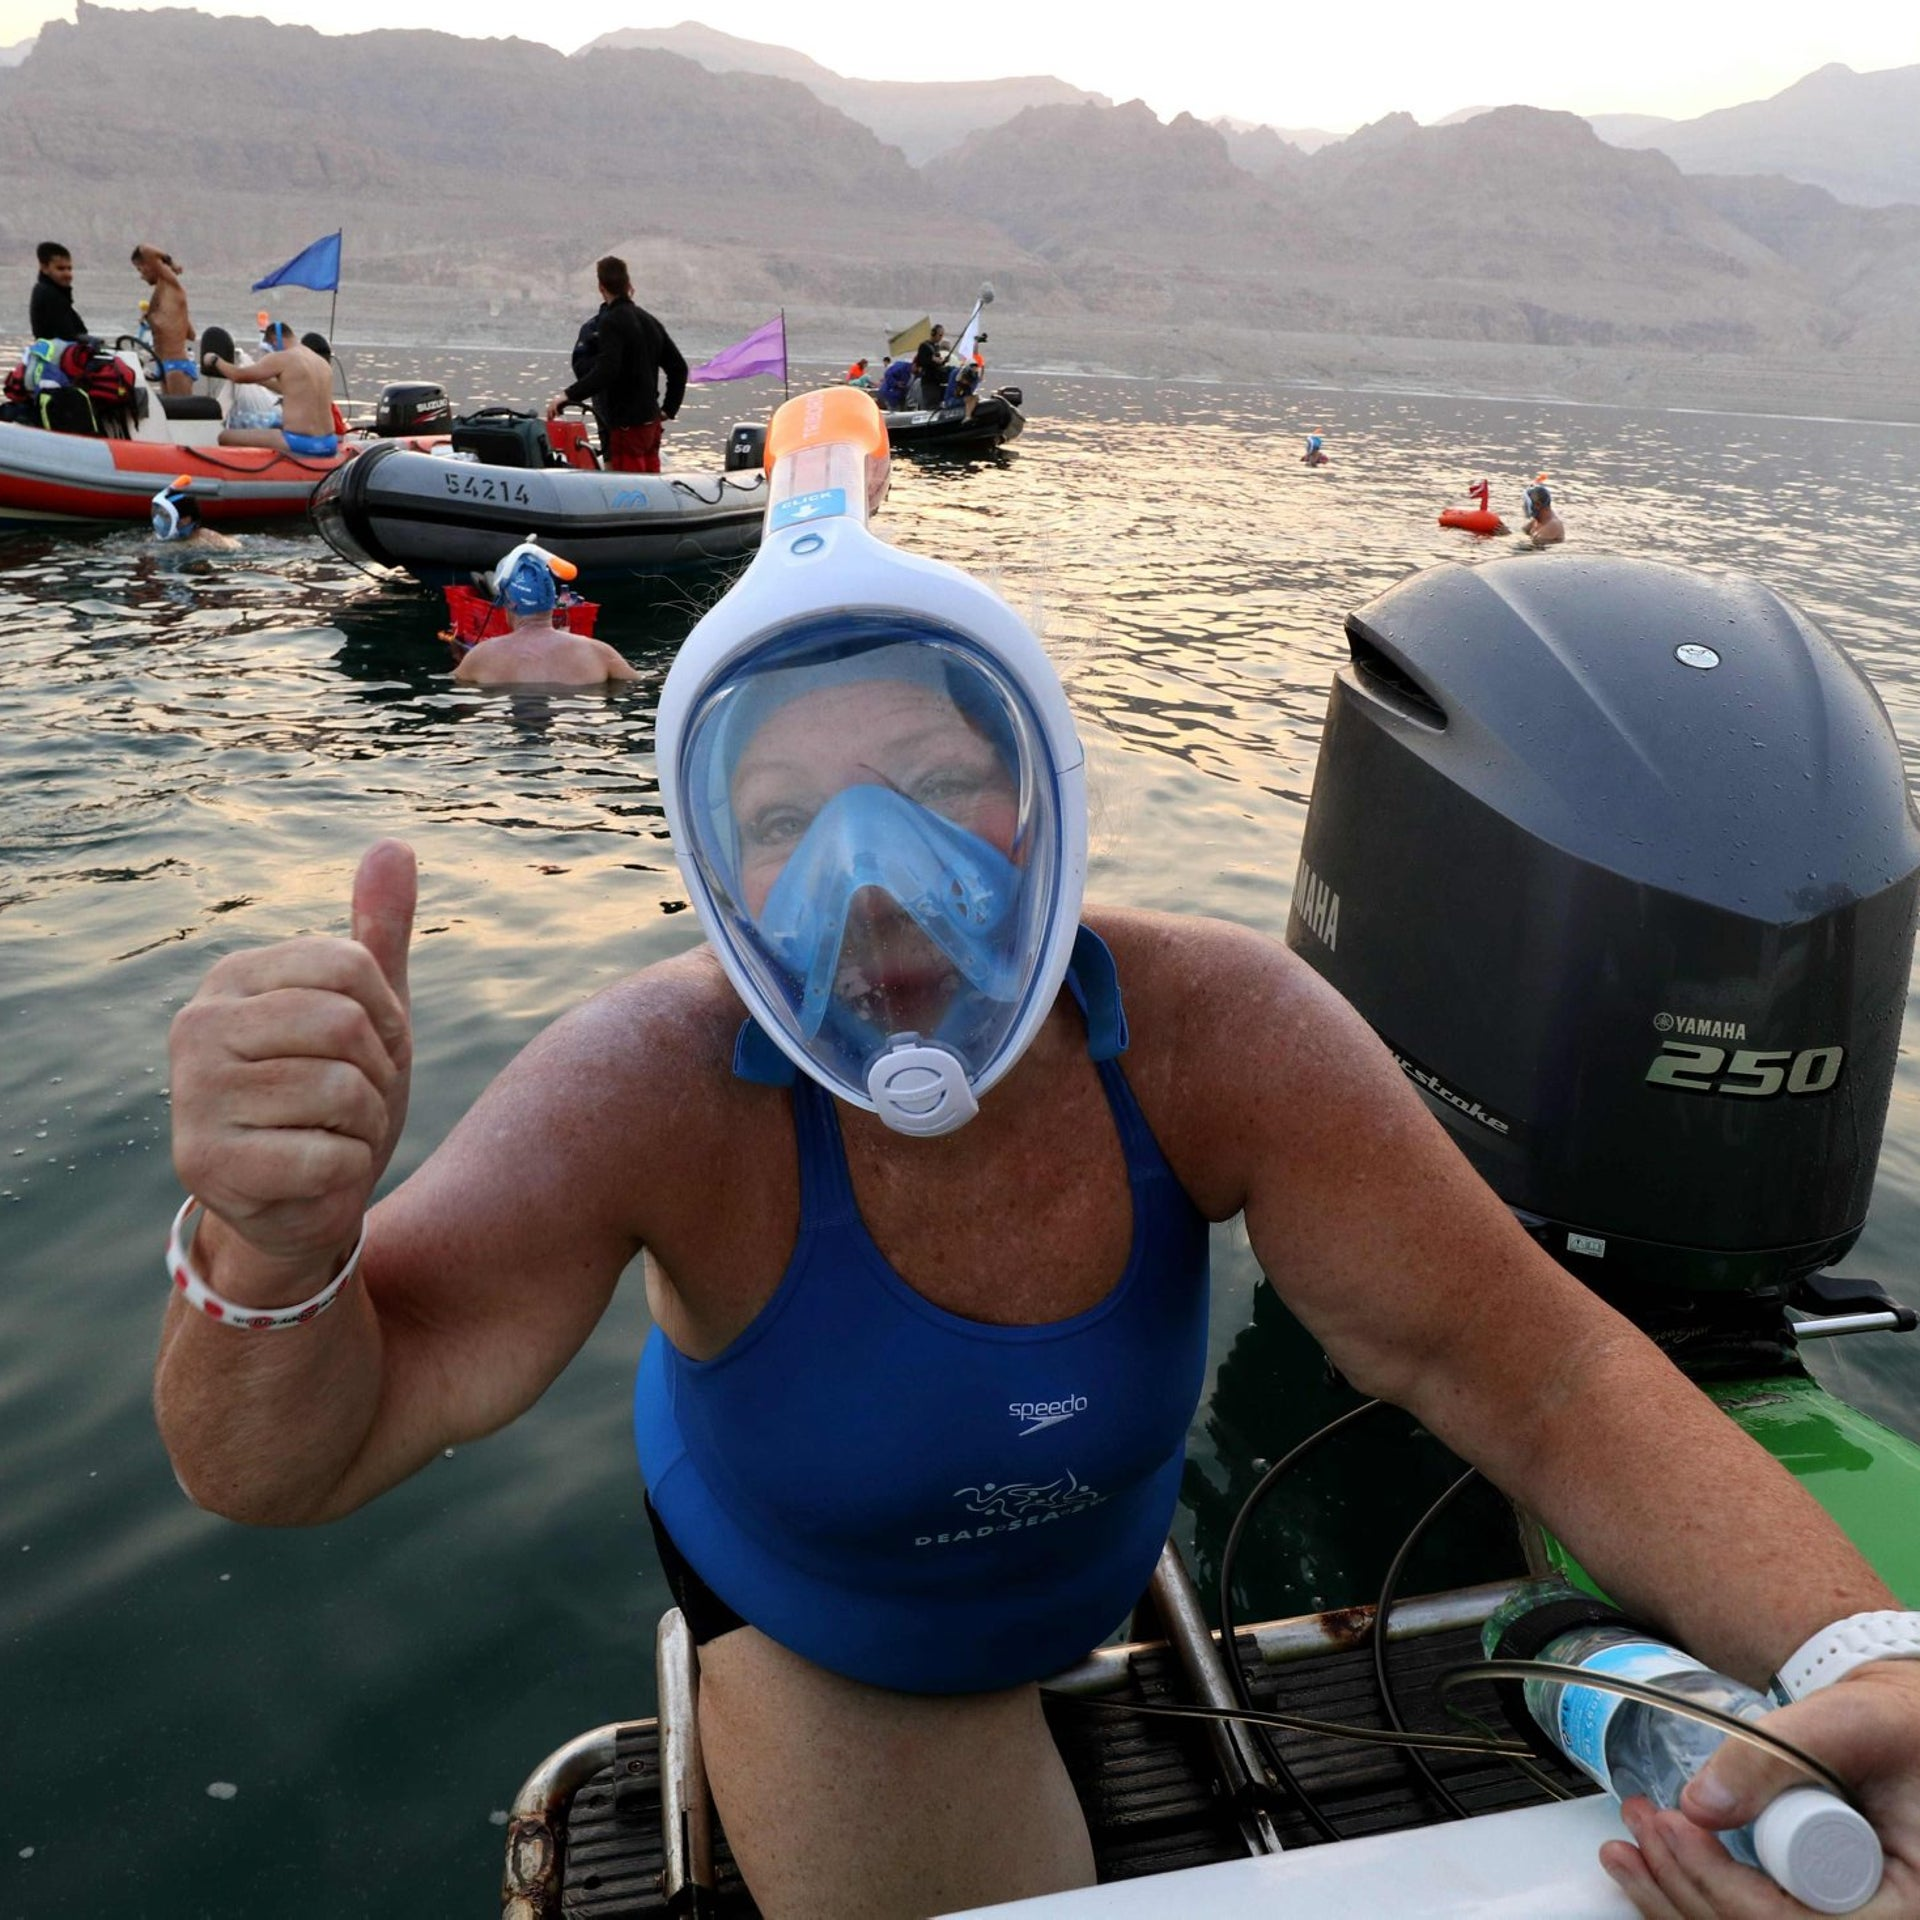 A woman taking part in a 16 kilometers  swim from Jordan to Israel across the Dead Sea, organised by the EcoPeace charity aimed at raising awareness for the iconic water body which has been receding by roughly a metre each year, gives the thumbs up upon the departure from Jordan on November 15, 2016. The 27 extreme swimmers from across the world, equipped with special masks due to the water's high salinity, took seven hours to make the crossing, organisers said. The distance is only 18 kilometres and the mineral-rich lake was calm, but the high amount of salt in the water makes it nearly impossible to swim normally.